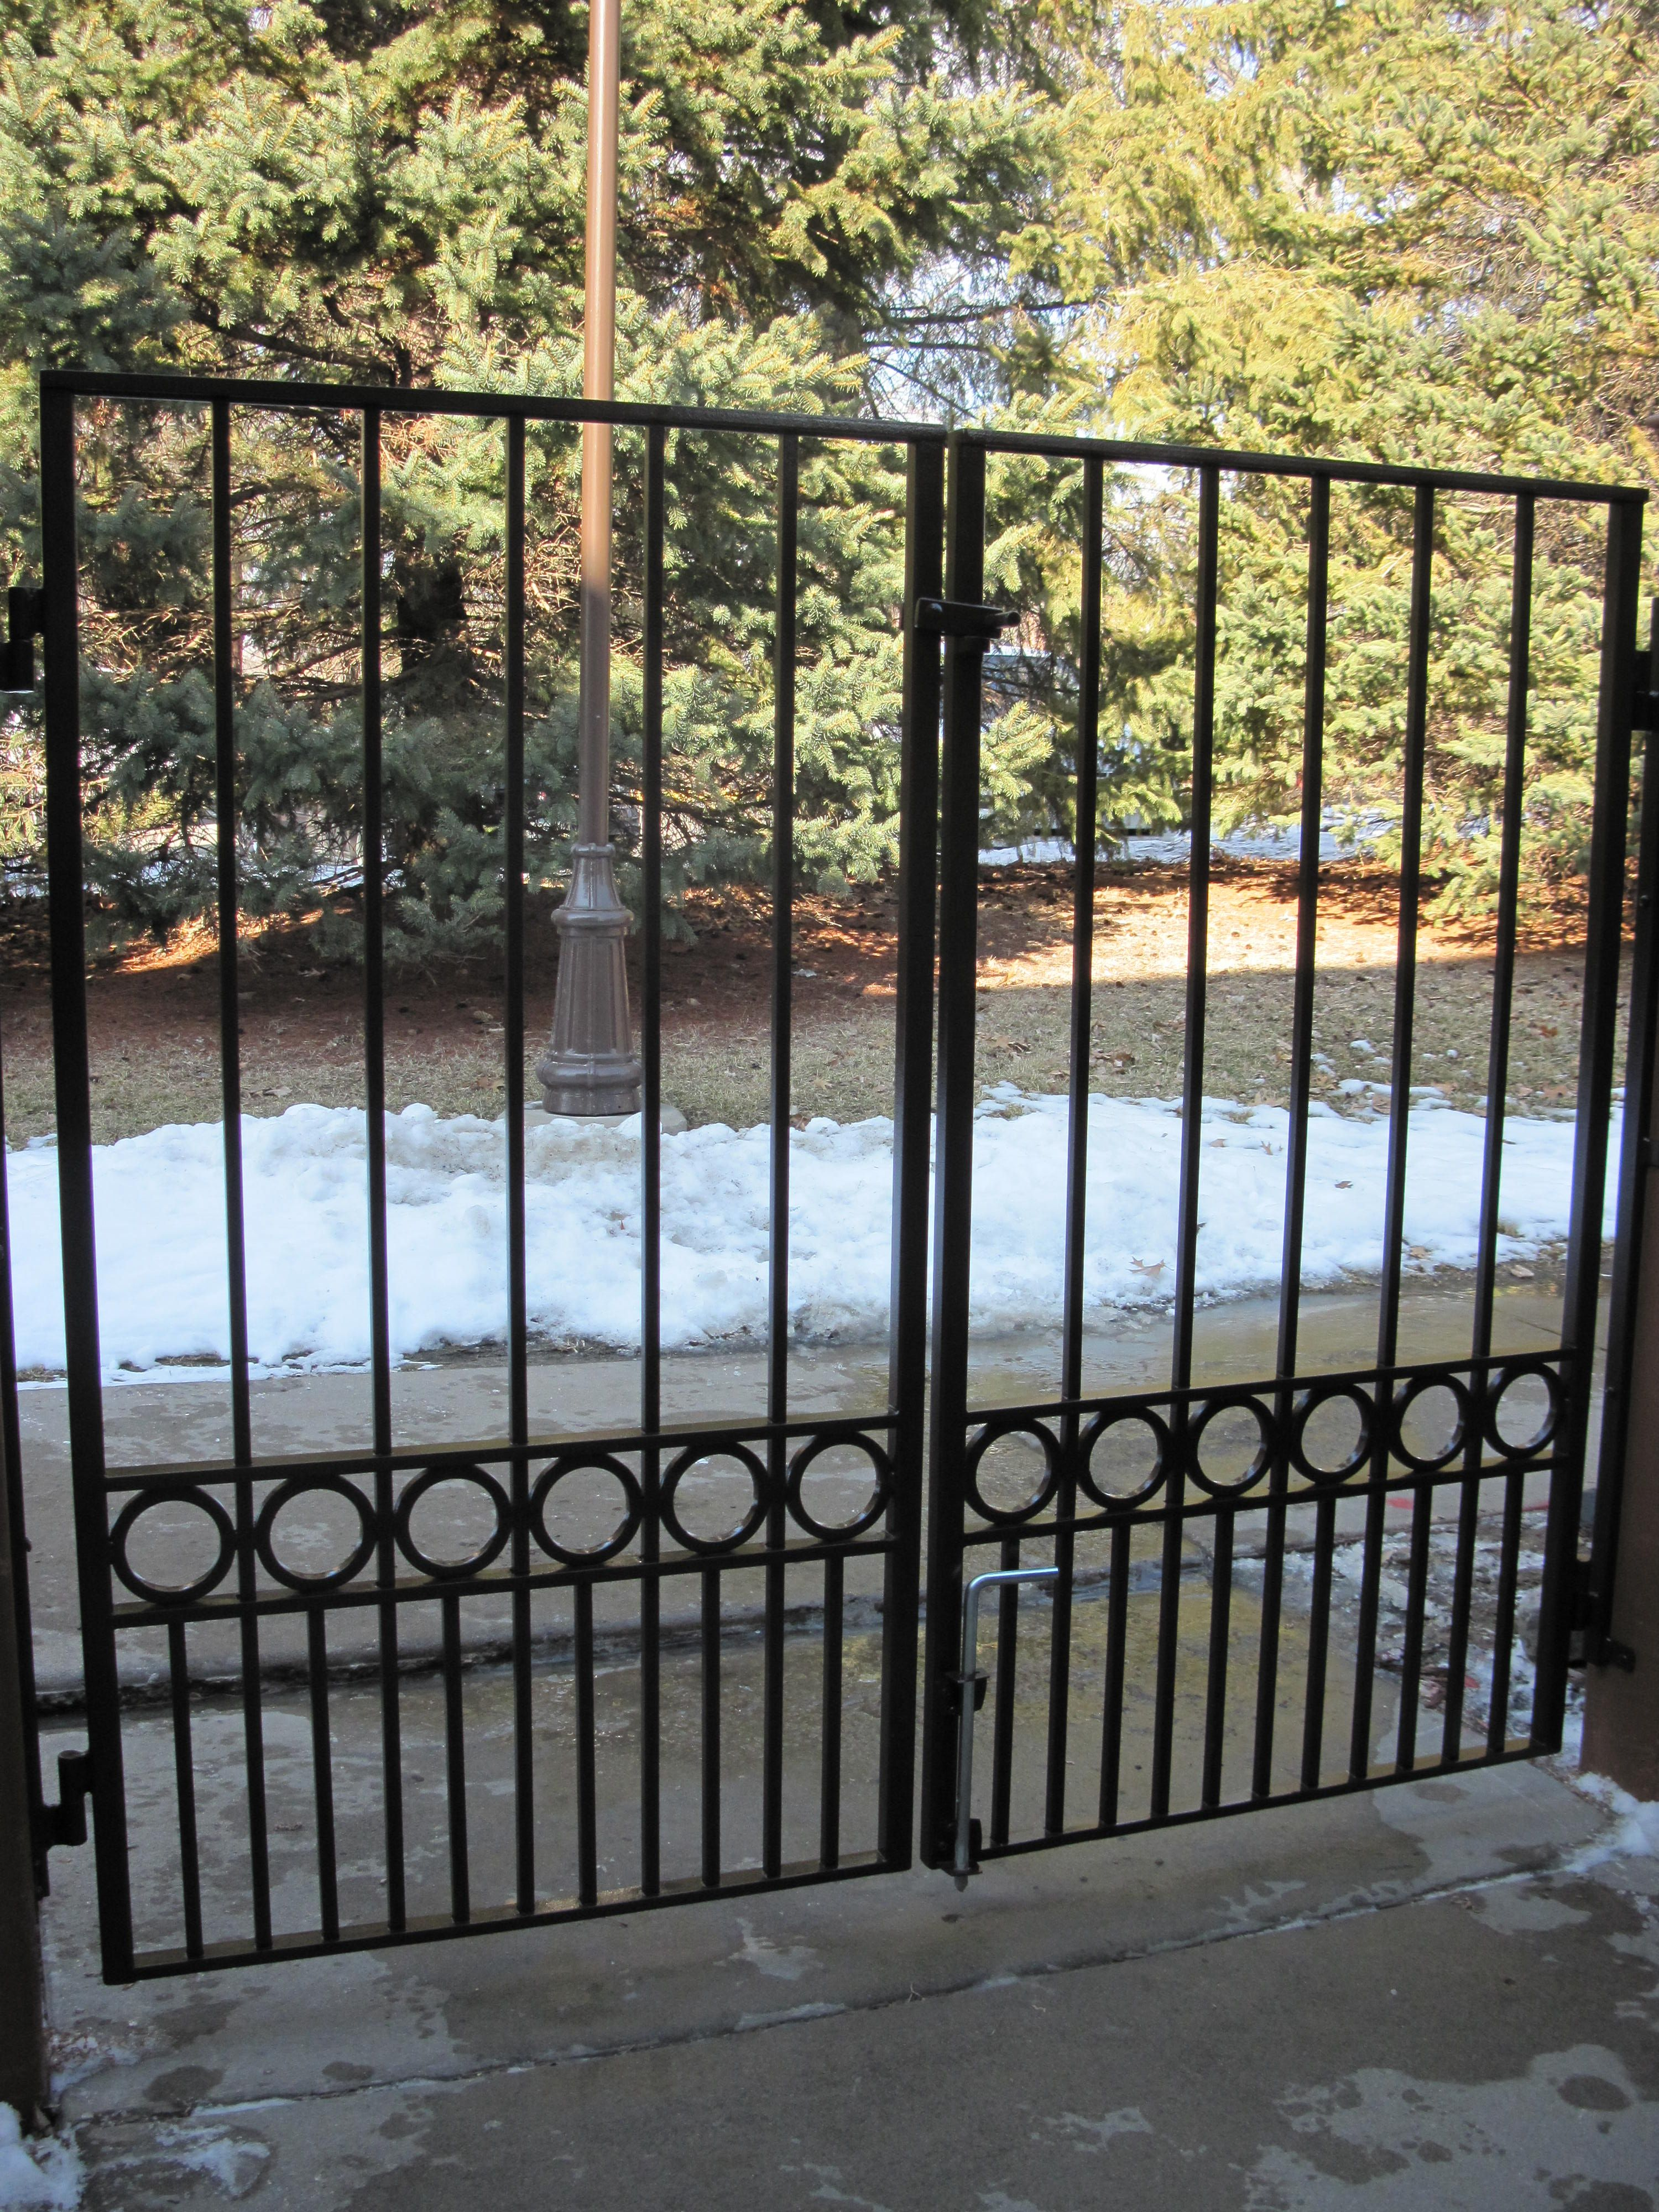 Double Iron Gates For Patio Area. Close Spoke Spacing At Bottom Meant To  Keep Cat